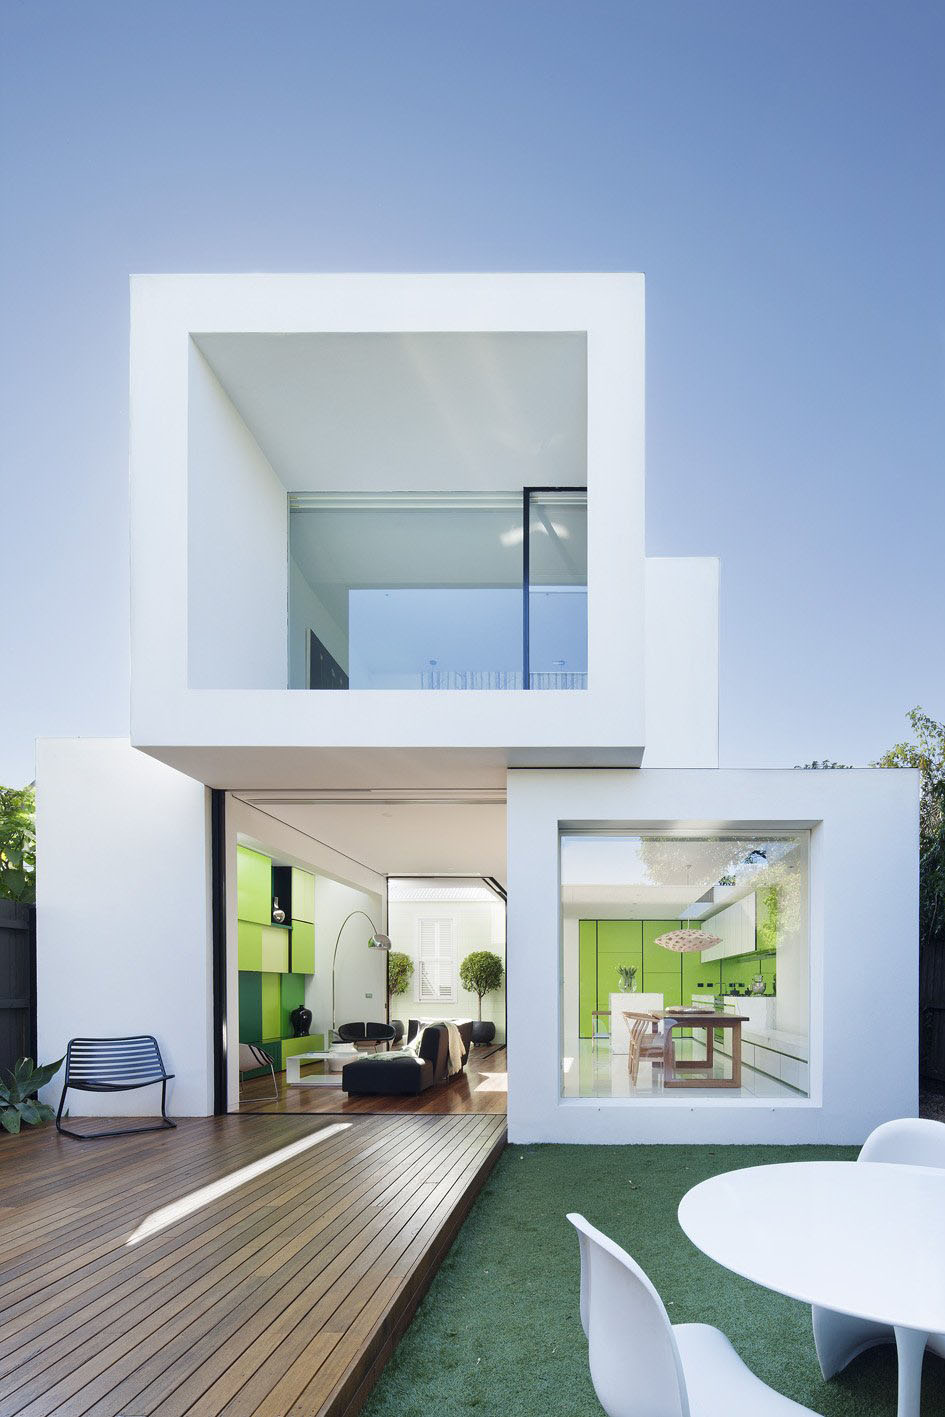 Traditional Home Library: House Extension Links Minimalist White Cubes With